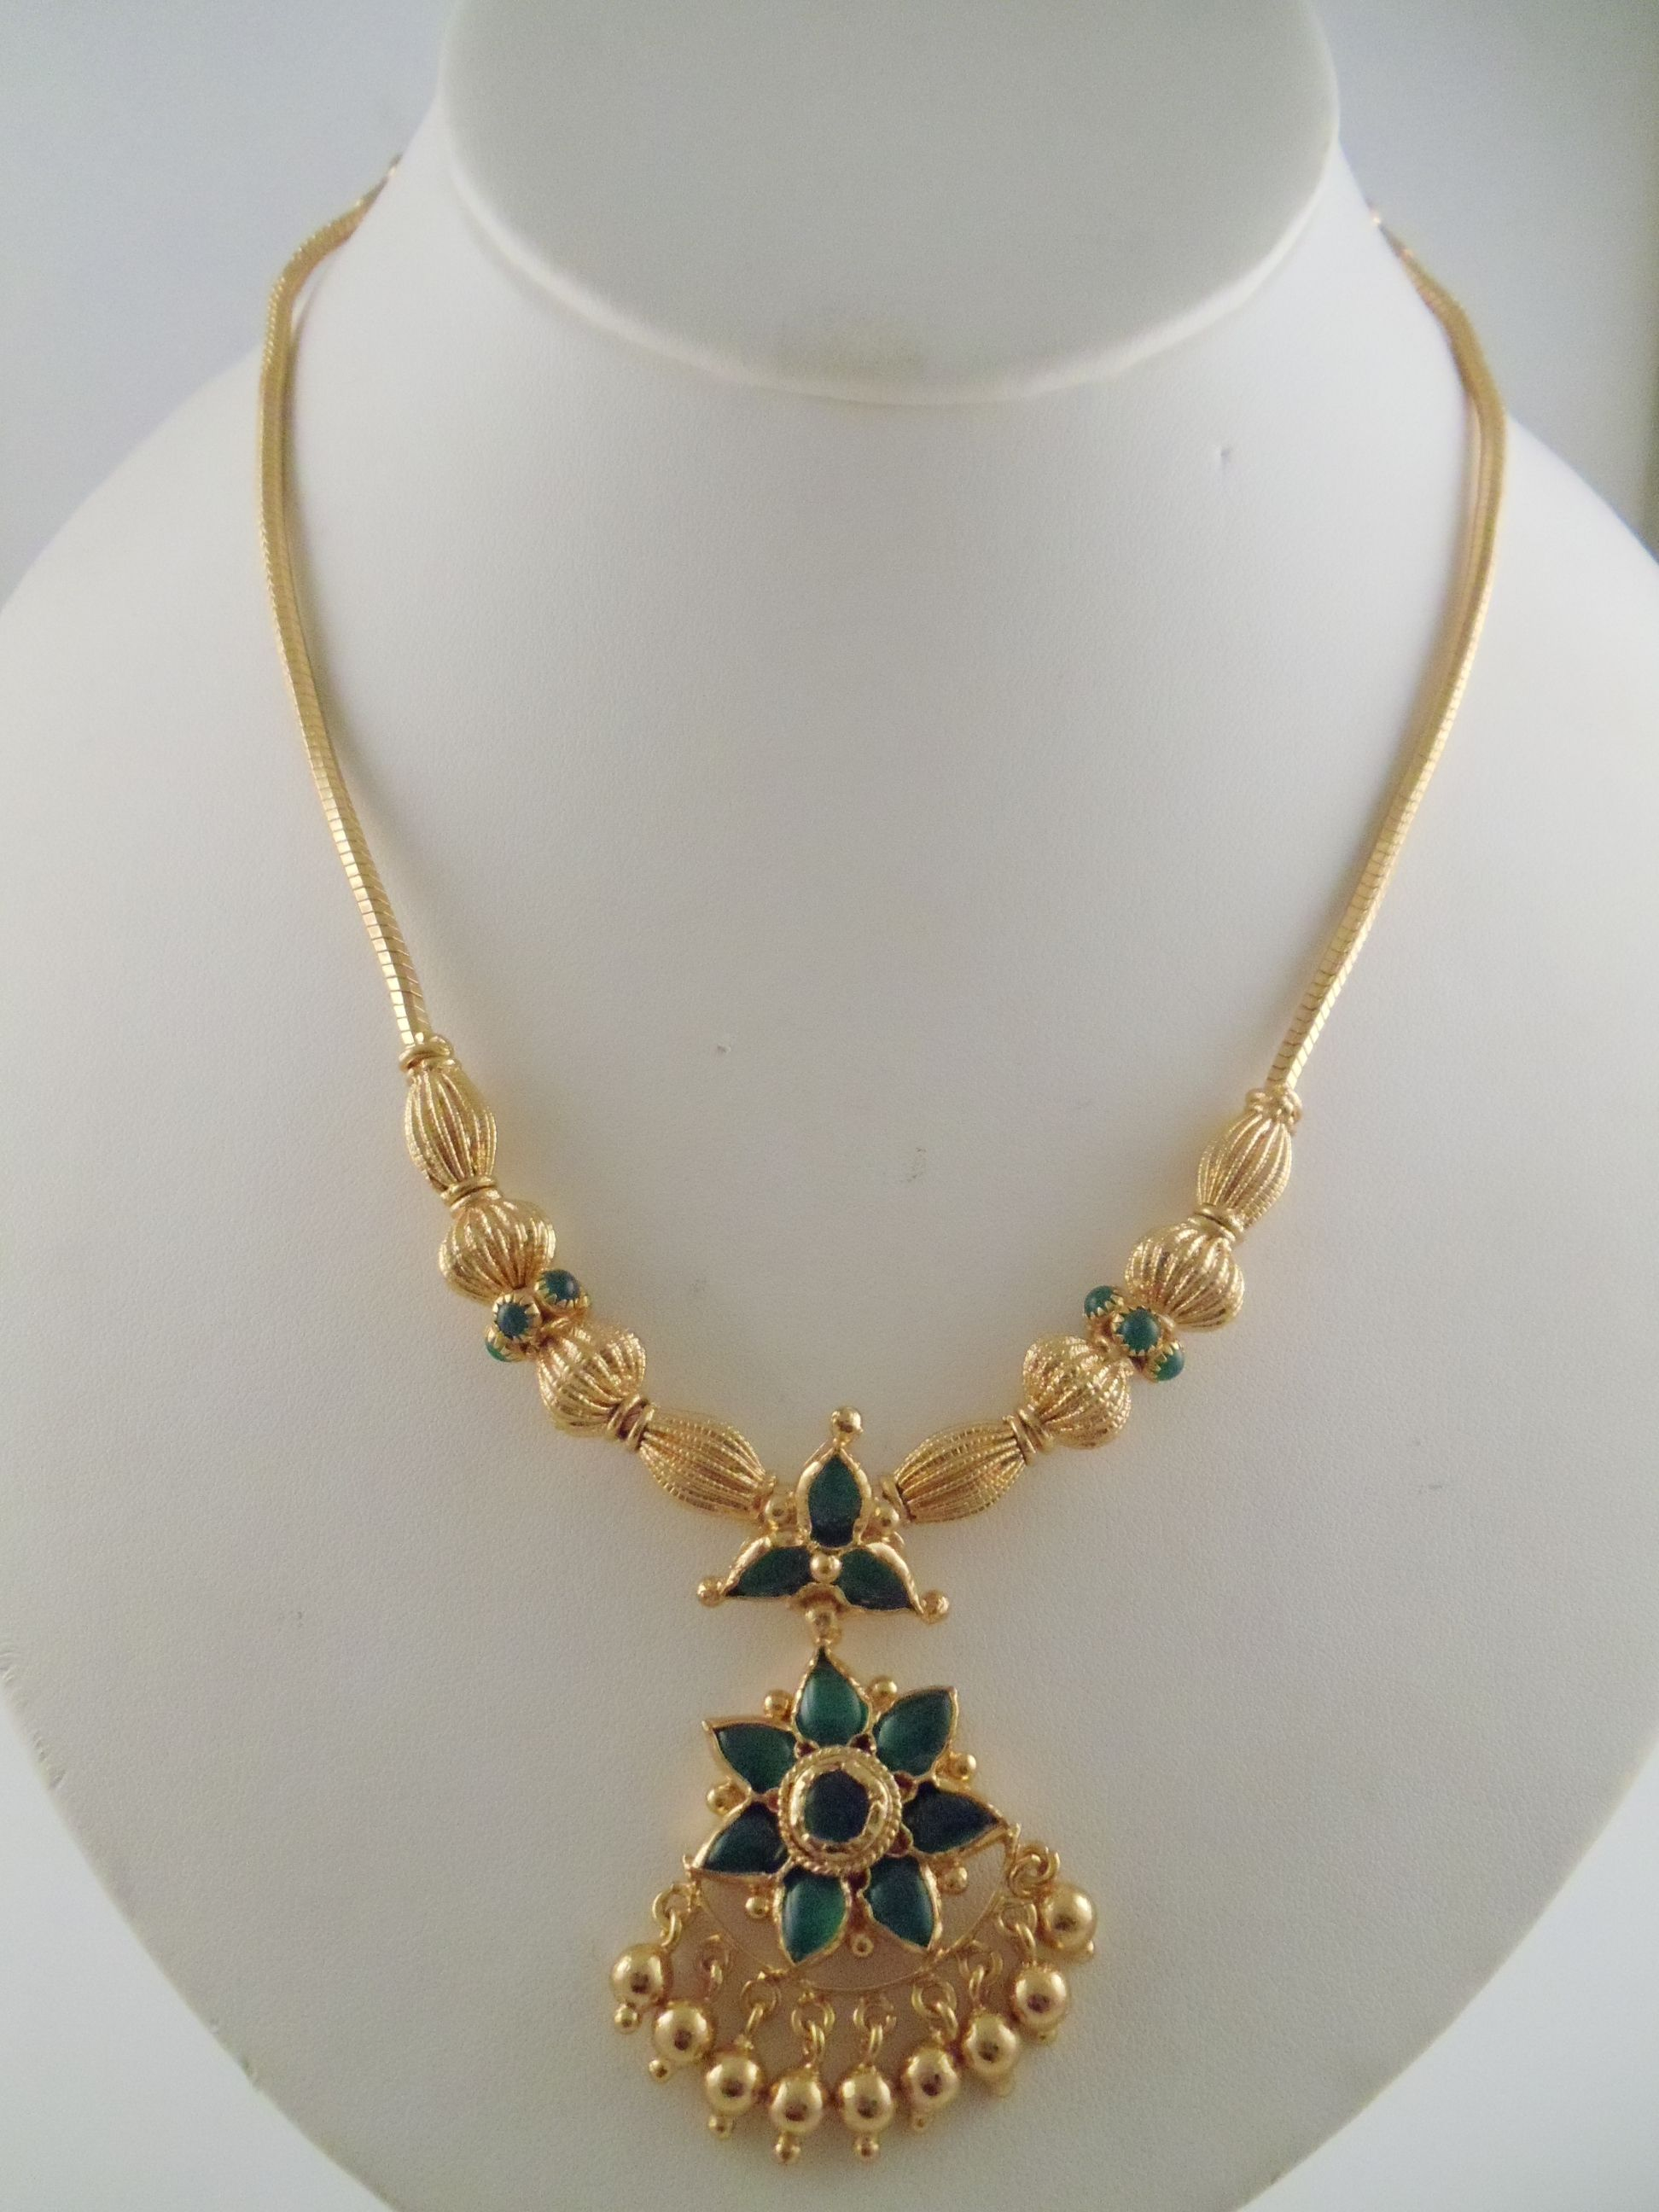 Latest gold necklace designs in grams pachi necklace latest jewellery - Image Result For Gold Long Necklace Designs In 20 Grams